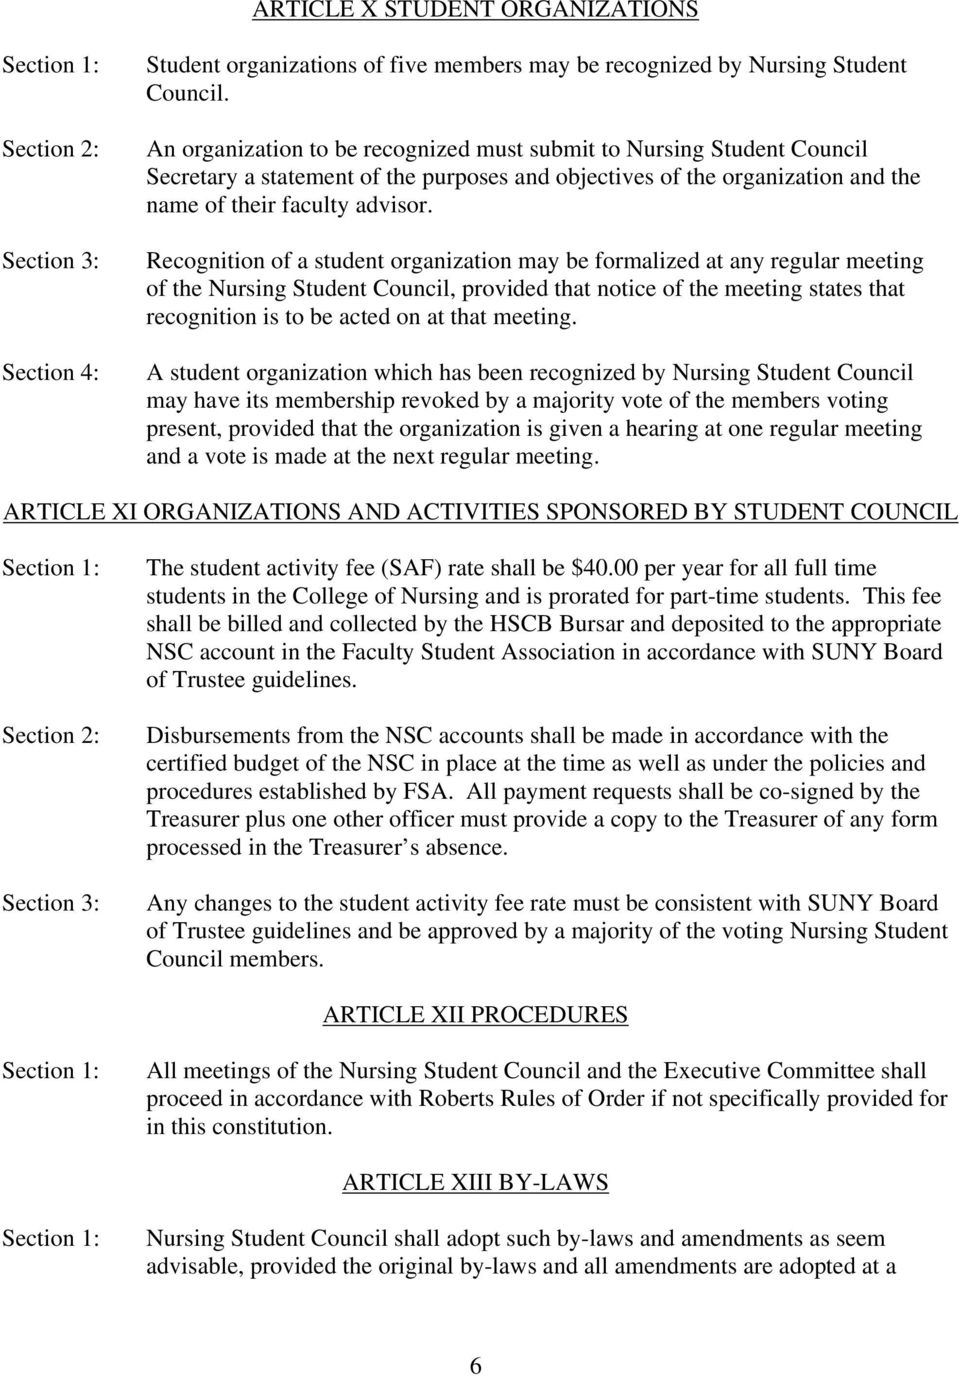 Recognition of a student organization may be formalized at any regular meeting of the Nursing Student Council, provided that notice of the meeting states that recognition is to be acted on at that